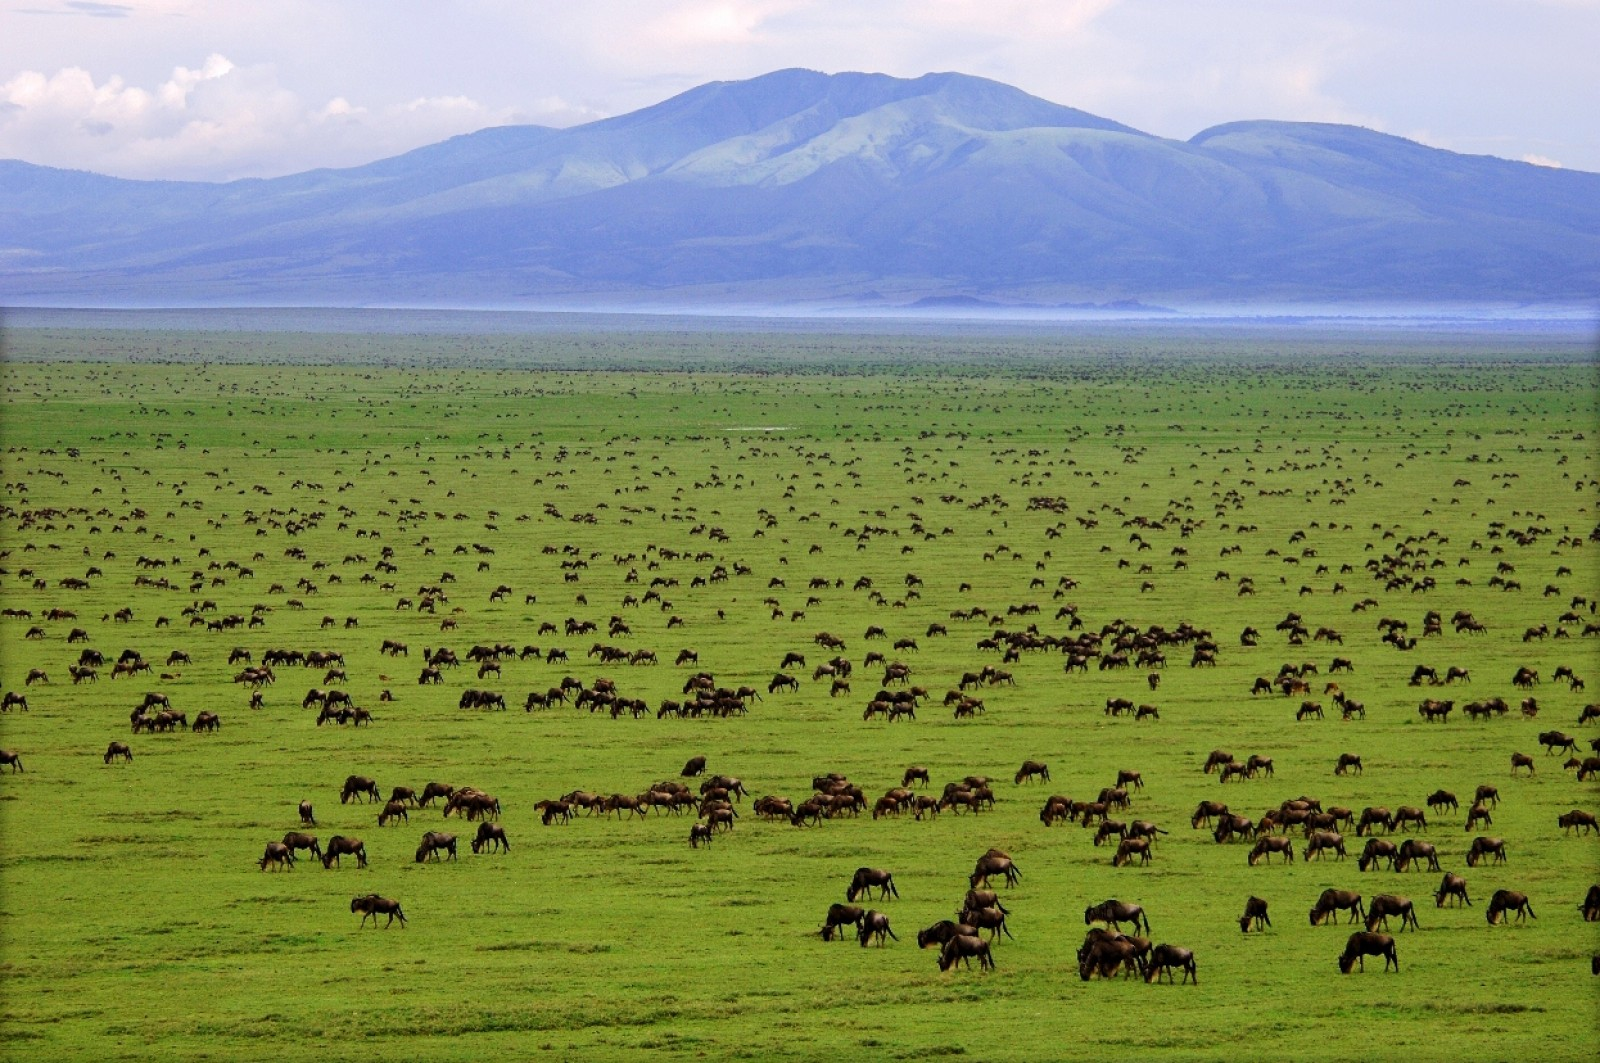 Discover The Animals Of The Serengeti